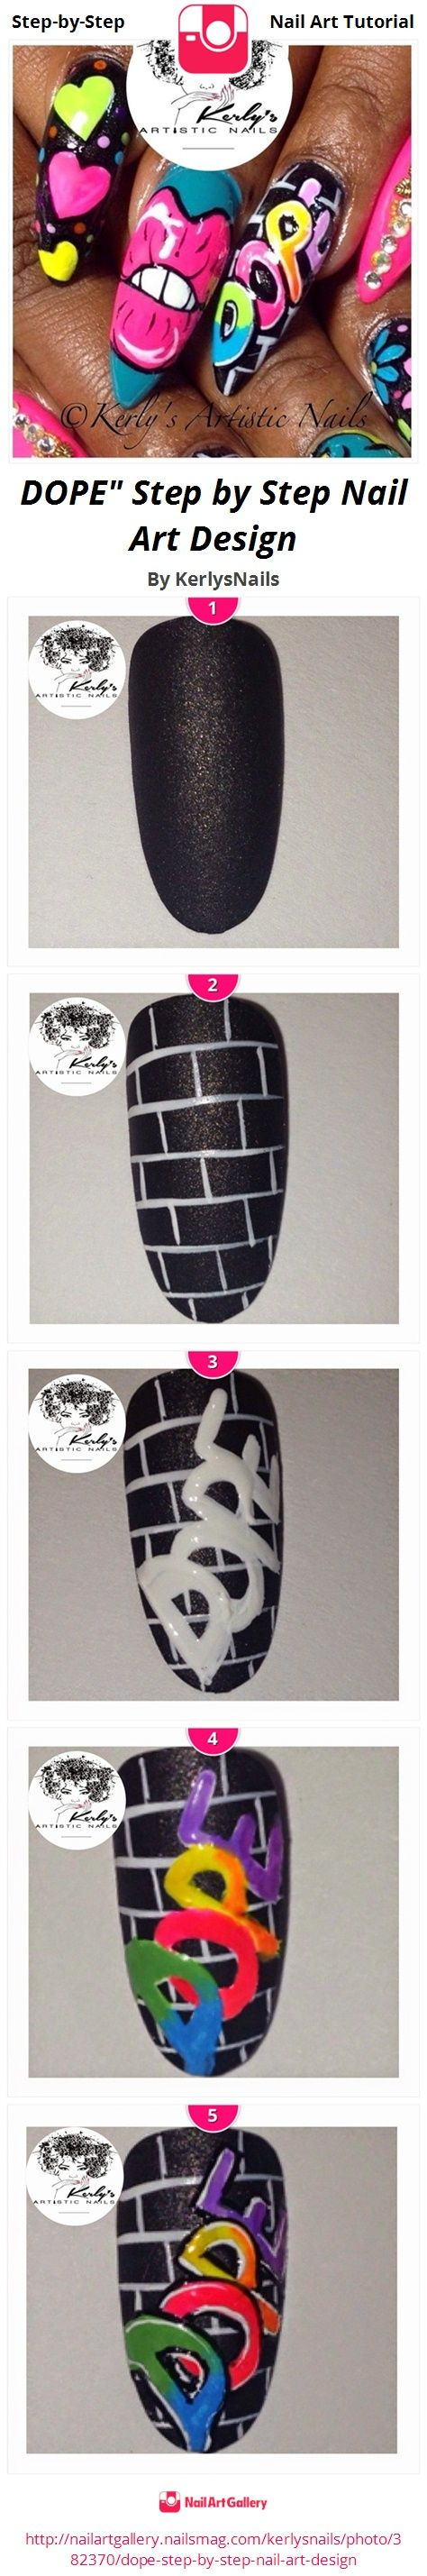 "DOPE"" Step by Step Nail Art Design by KerlysNails - Nail Art Gallery Step-by-Step Tutorials nailartgallery.nailsmag.com by Nails Magazine www.nailsmag.com #nailart"